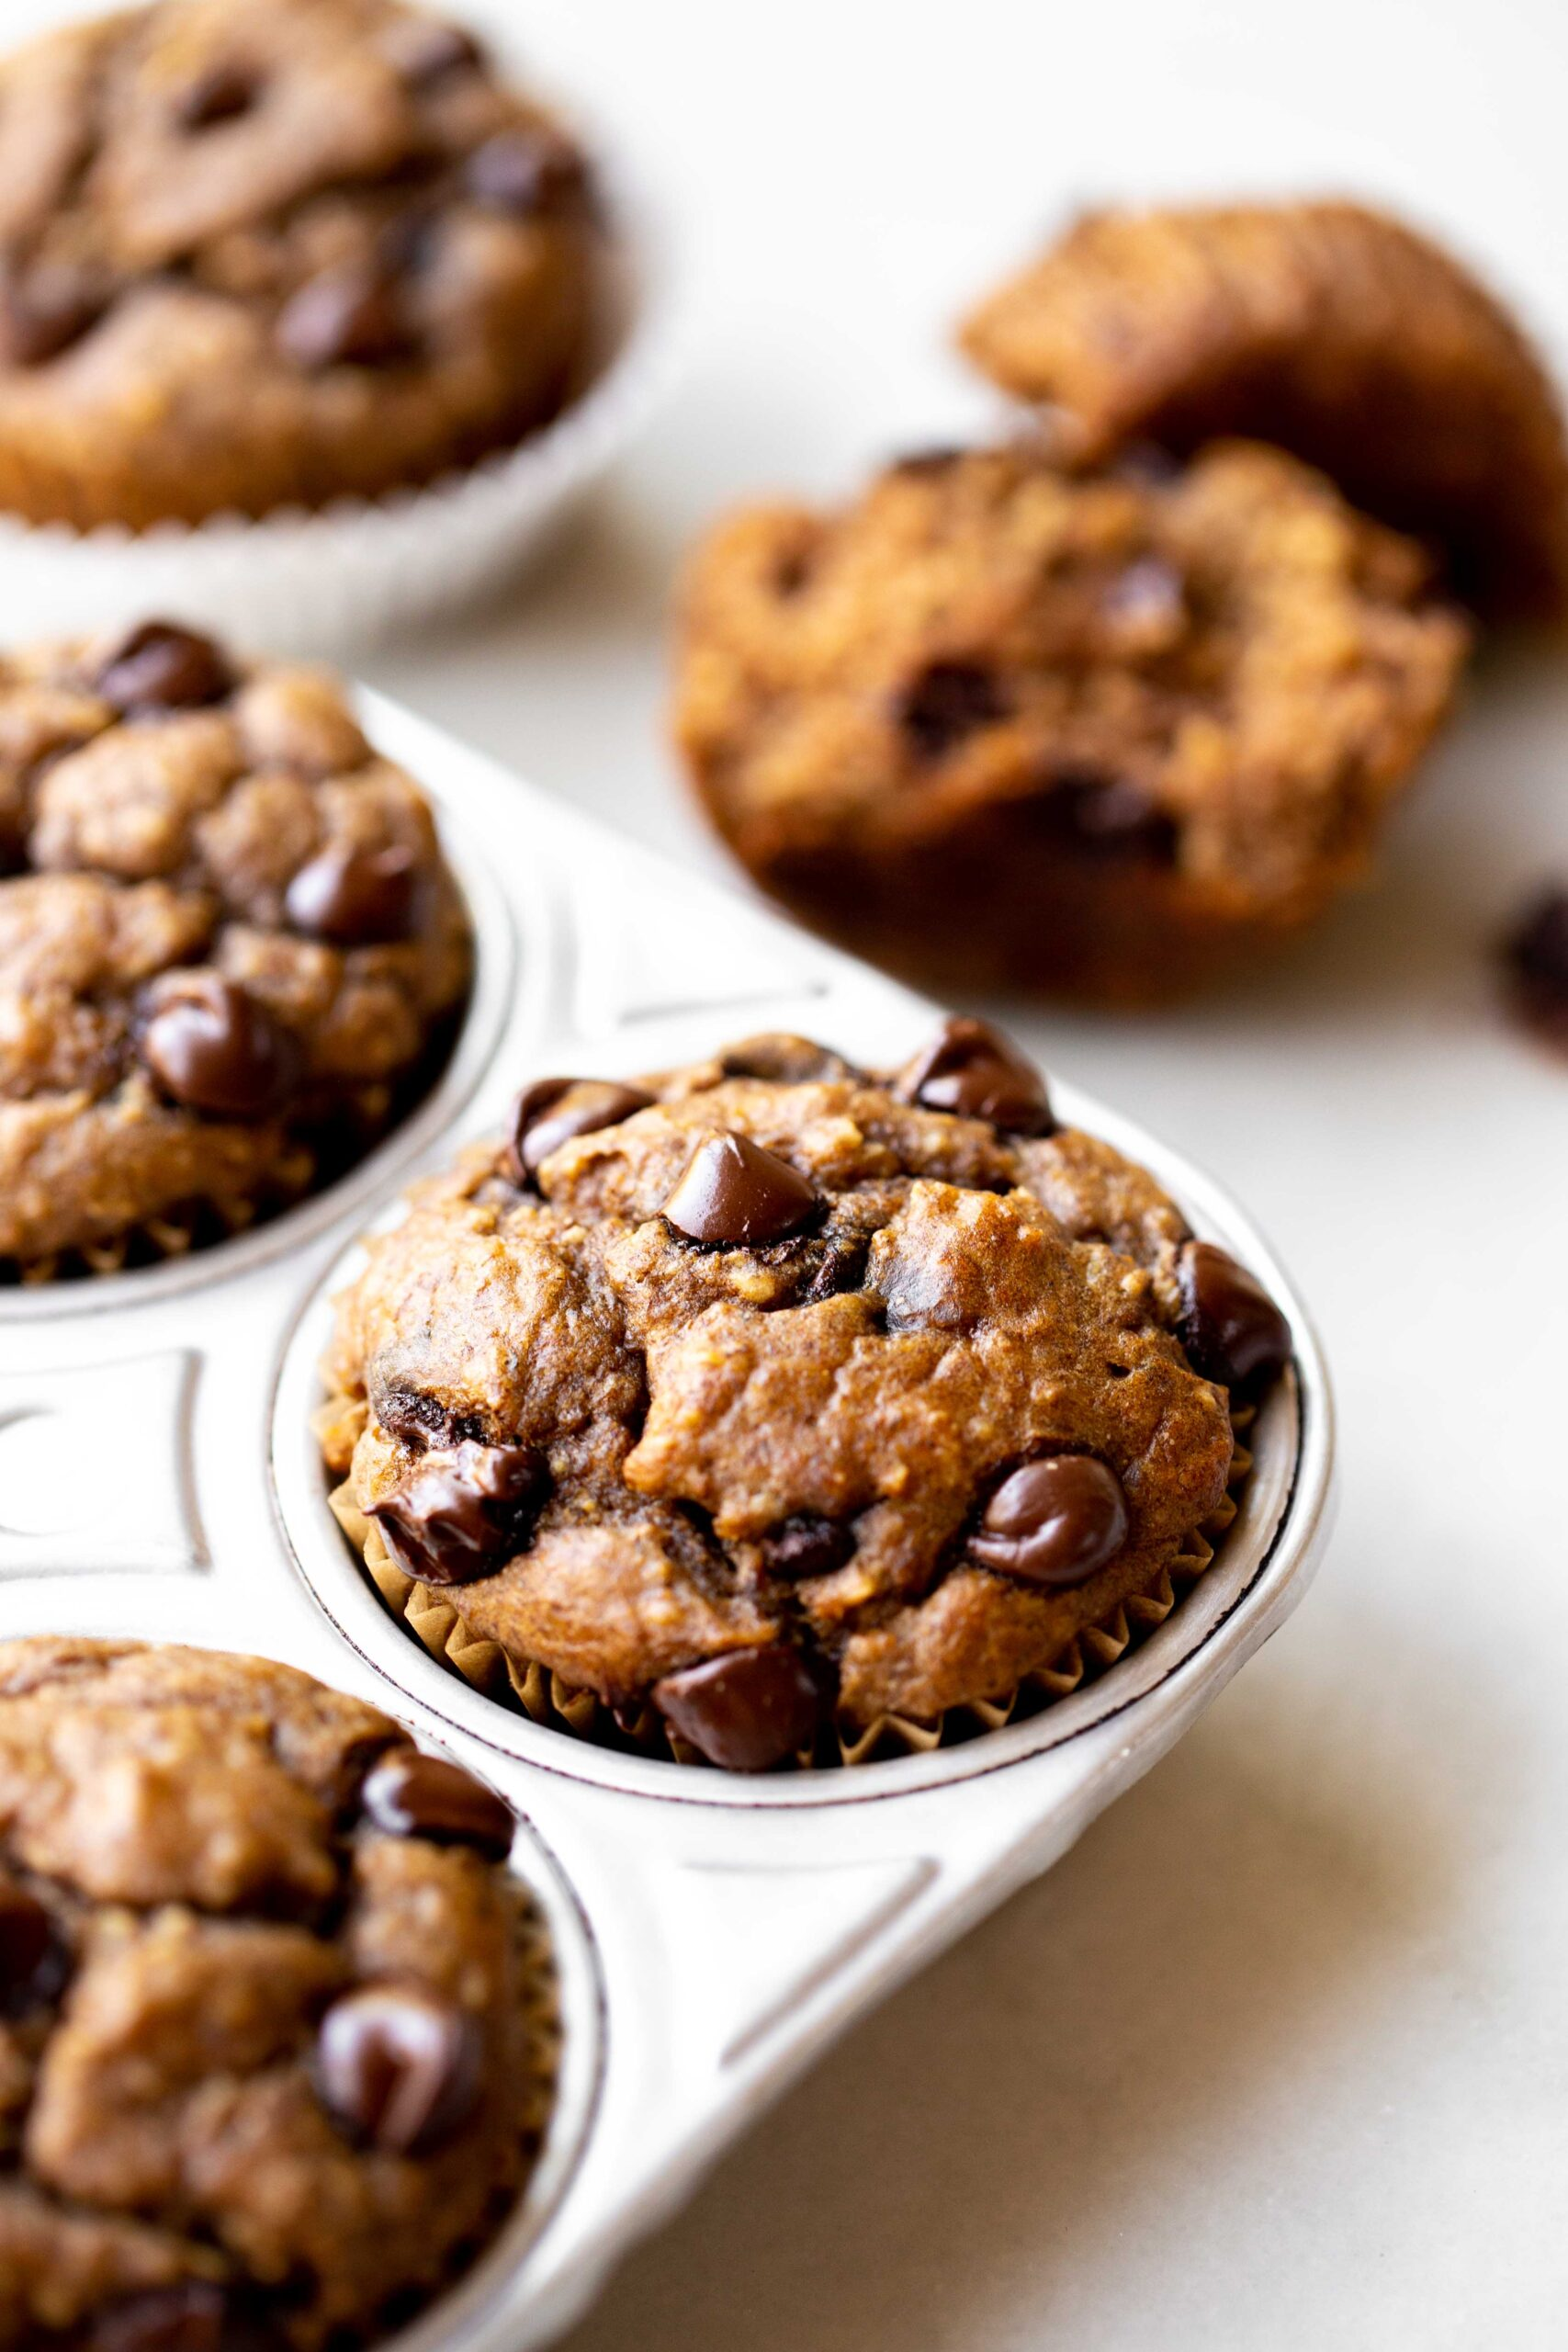 closeup photo at 45 degree angle of freshly baked healthy chocolate chip banana muffins in an aluminum muffin pan on a light gray marble background